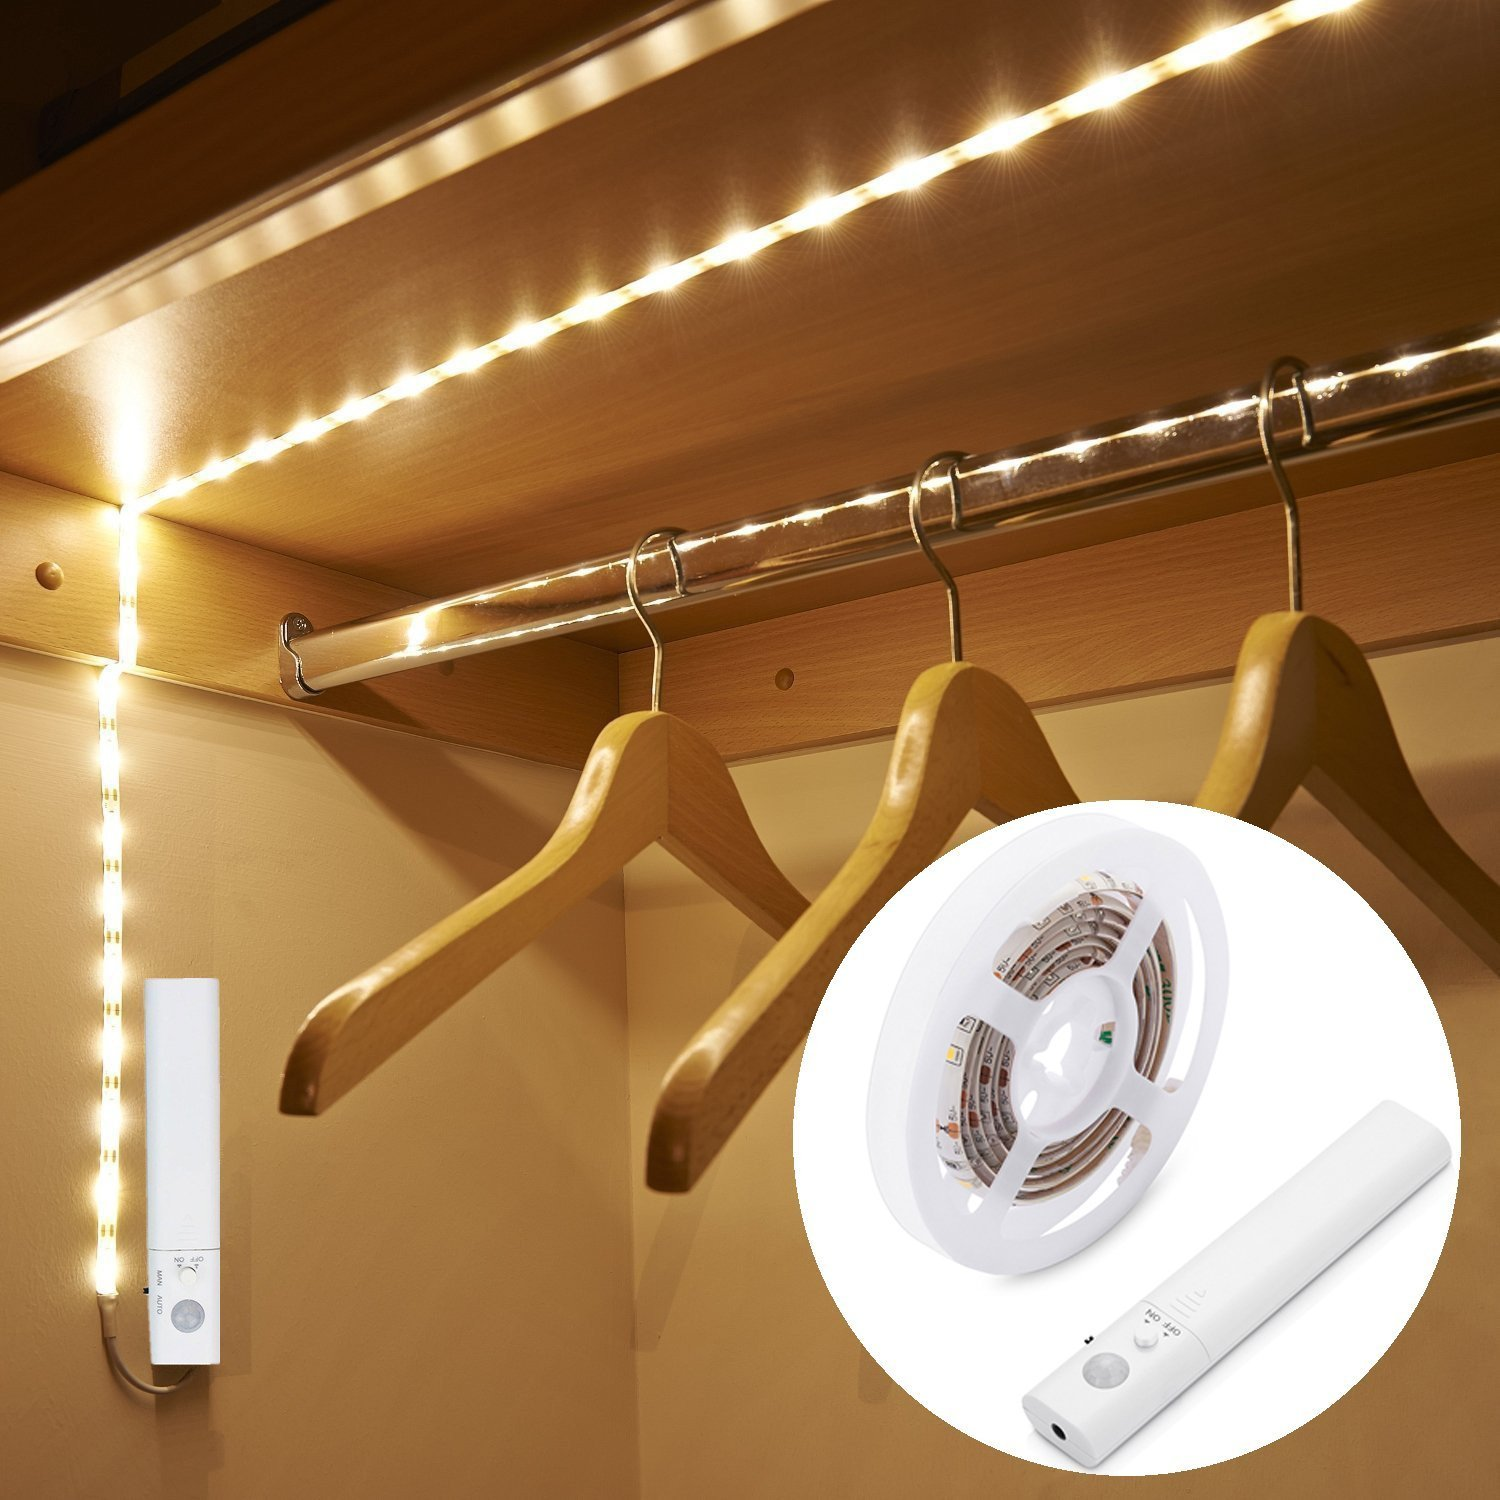 LUXJET Motion Sensor Closet Lights, Flexible LED Strip Kit with Motion Activated Rope Light for Bed, Bedroom, Under Cabinet, Warm White 3000K (4 AAA Batteries Operated, Not Included)